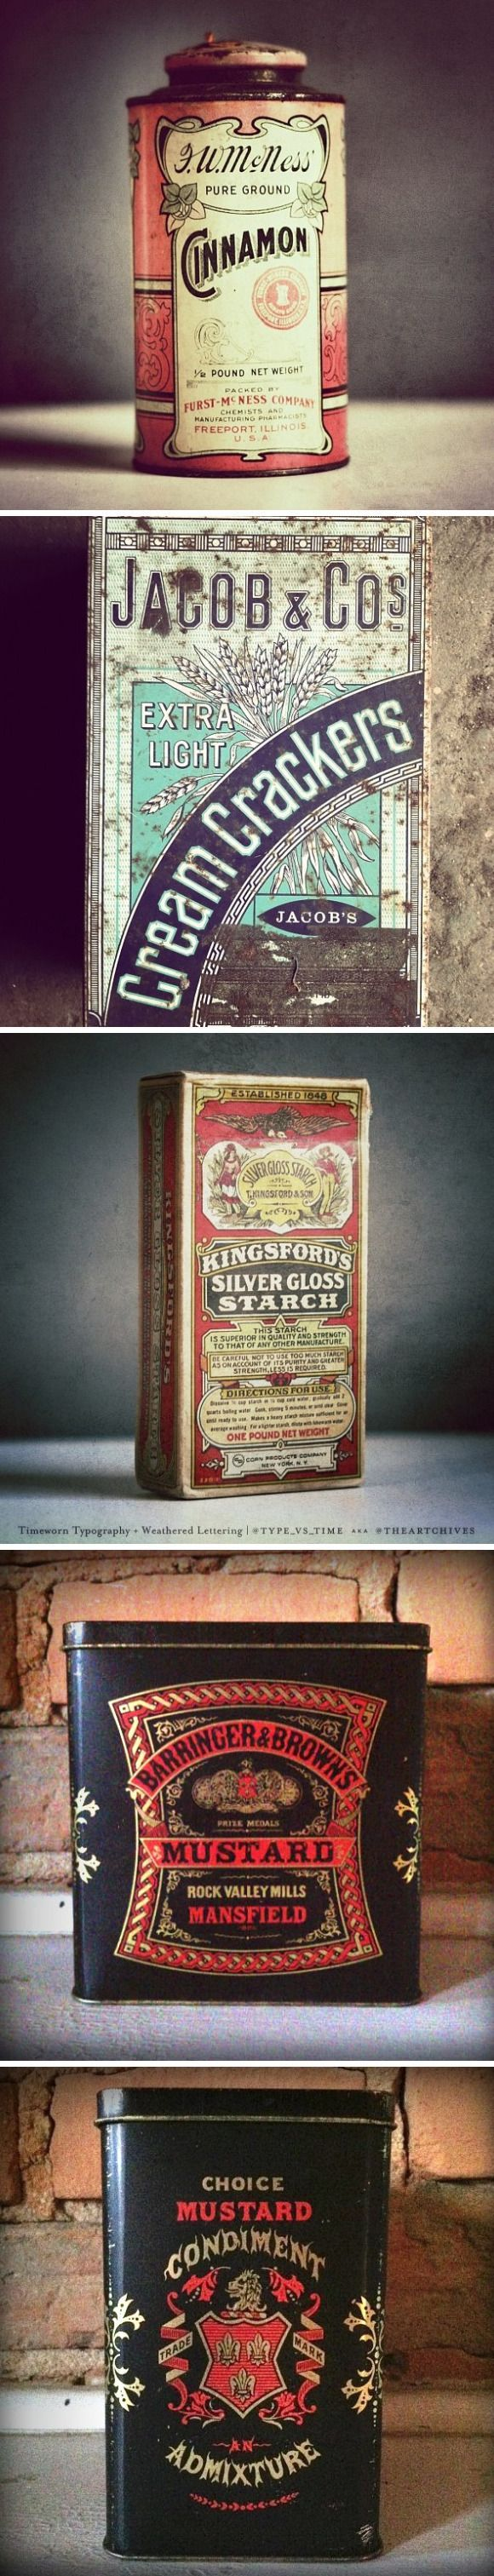 vintage packaging via type vs time collection